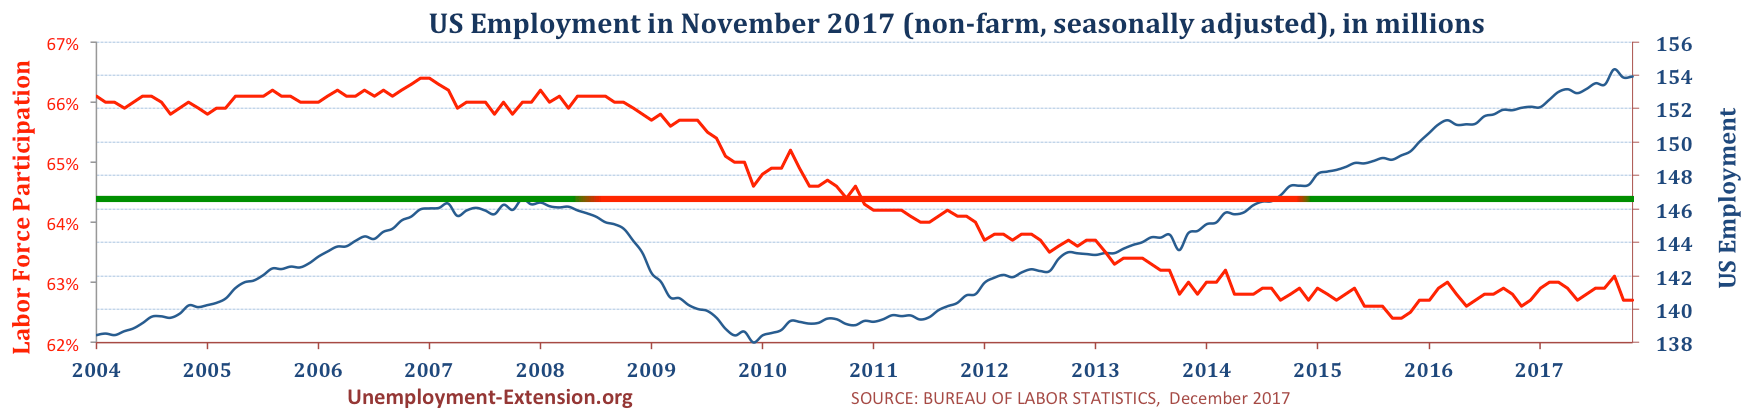 Total US Employment (non-farm, seasonally adjusted) in November of 2017. US economy has lost approximately 10 million jobs in comparison to pre-resession level.